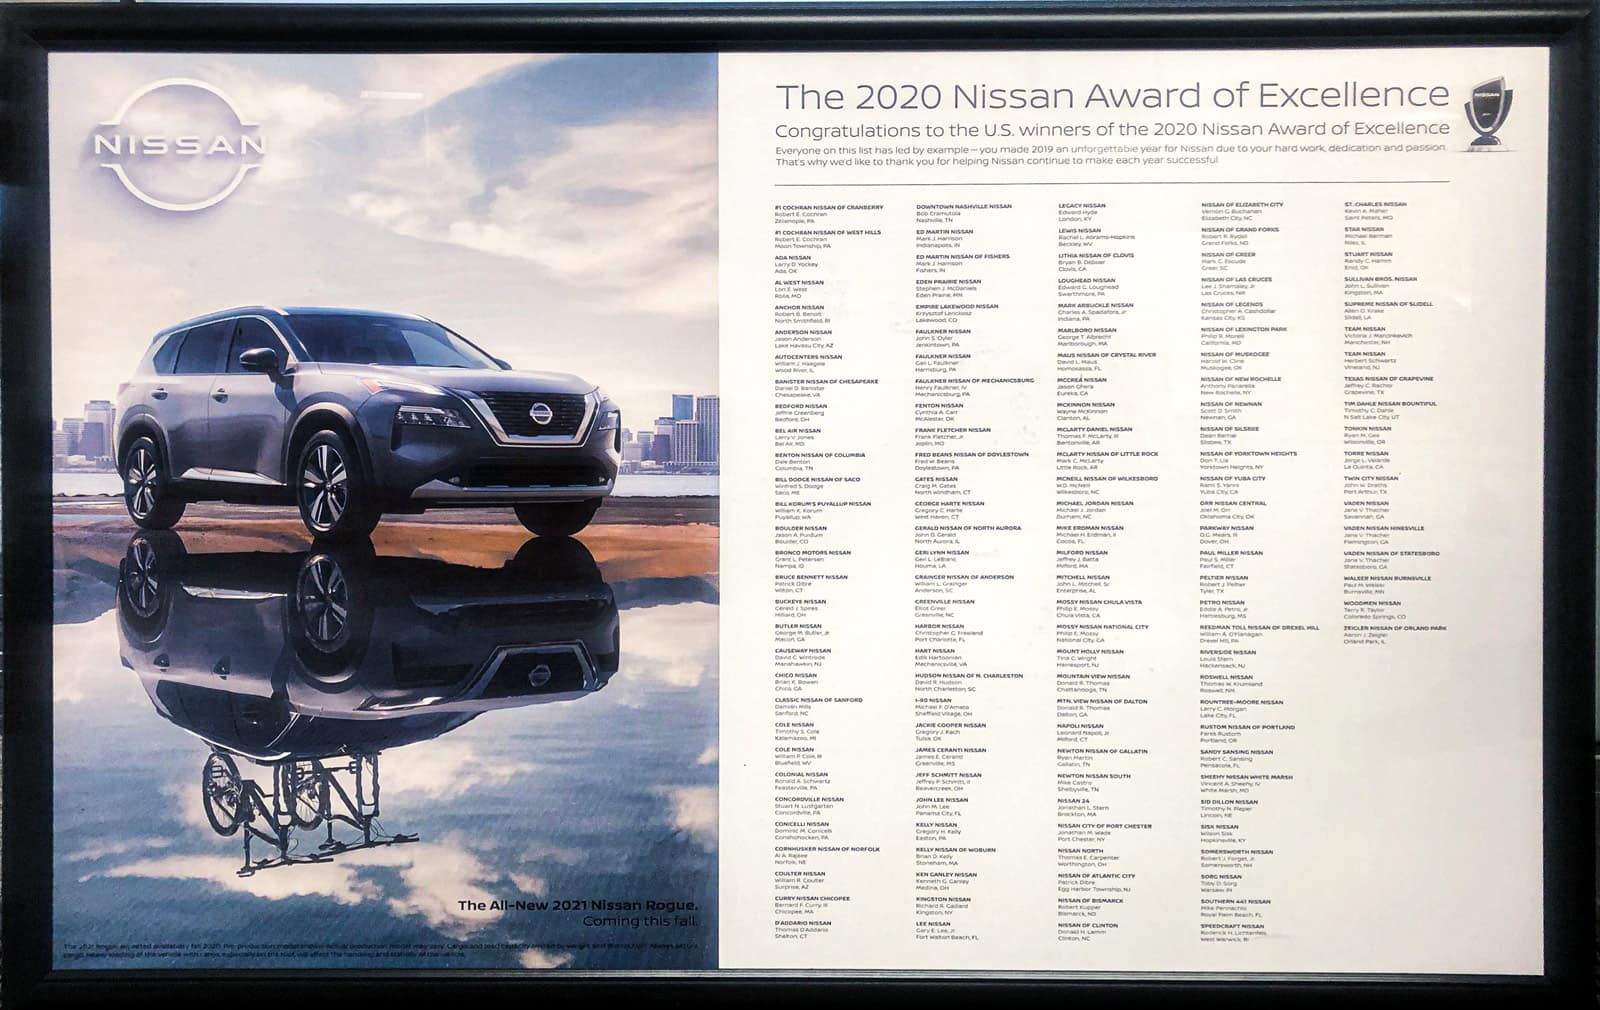 Star Nissan Receives Nissan Award of Excellence